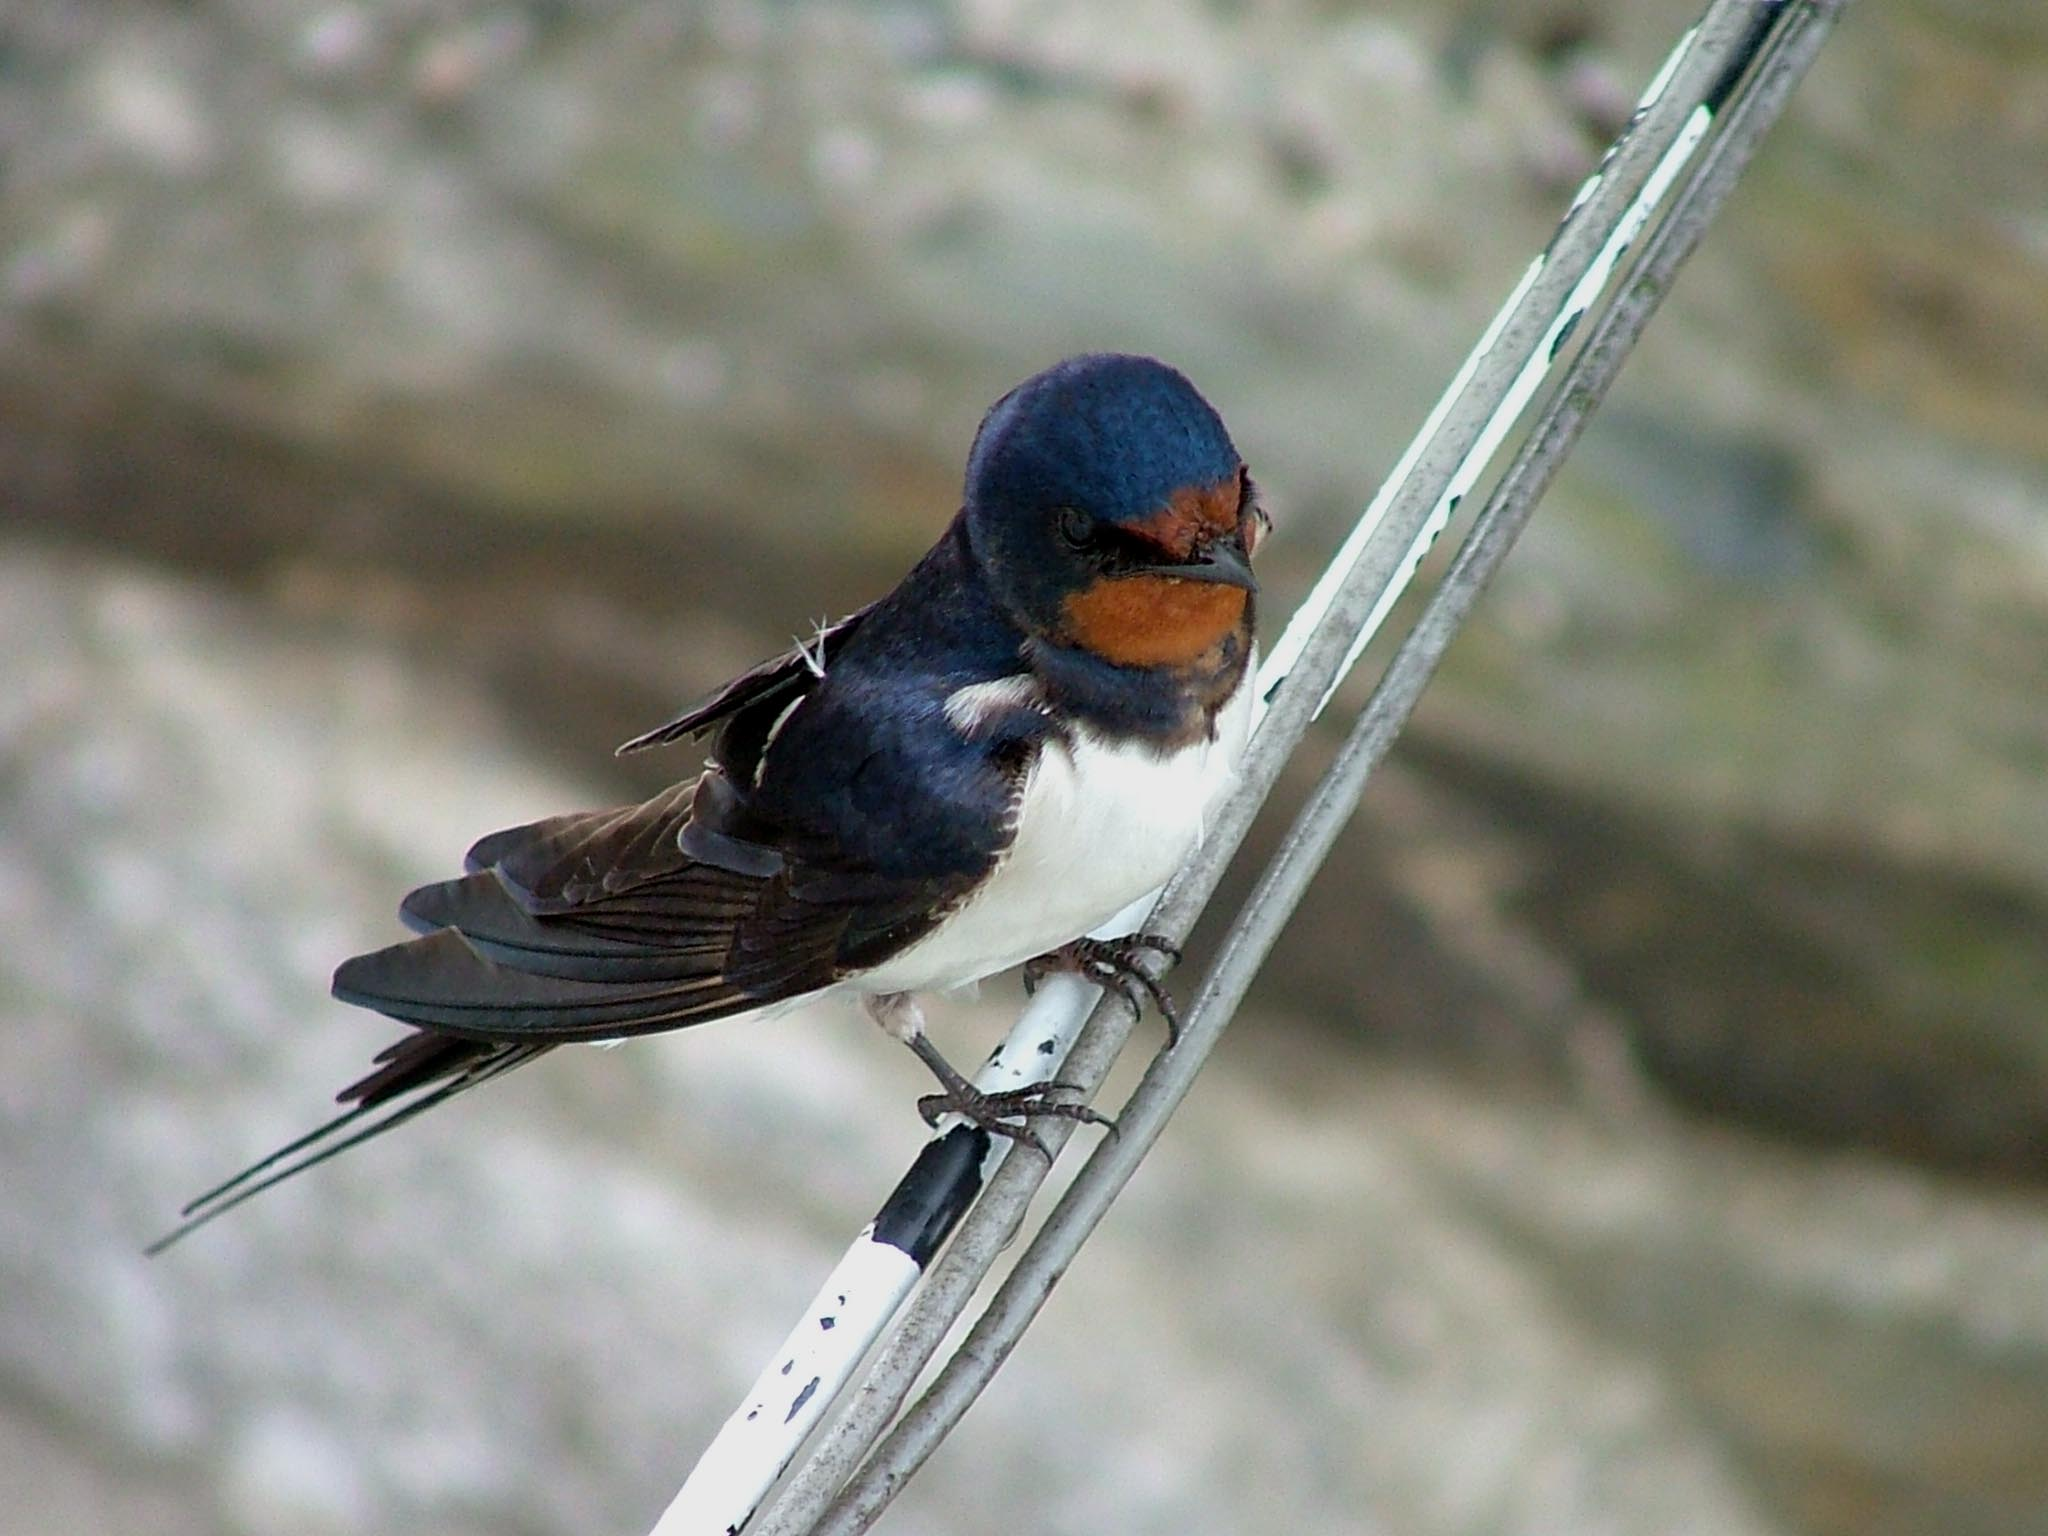 aerial-view-of-swallow-perched-on-electric-cables